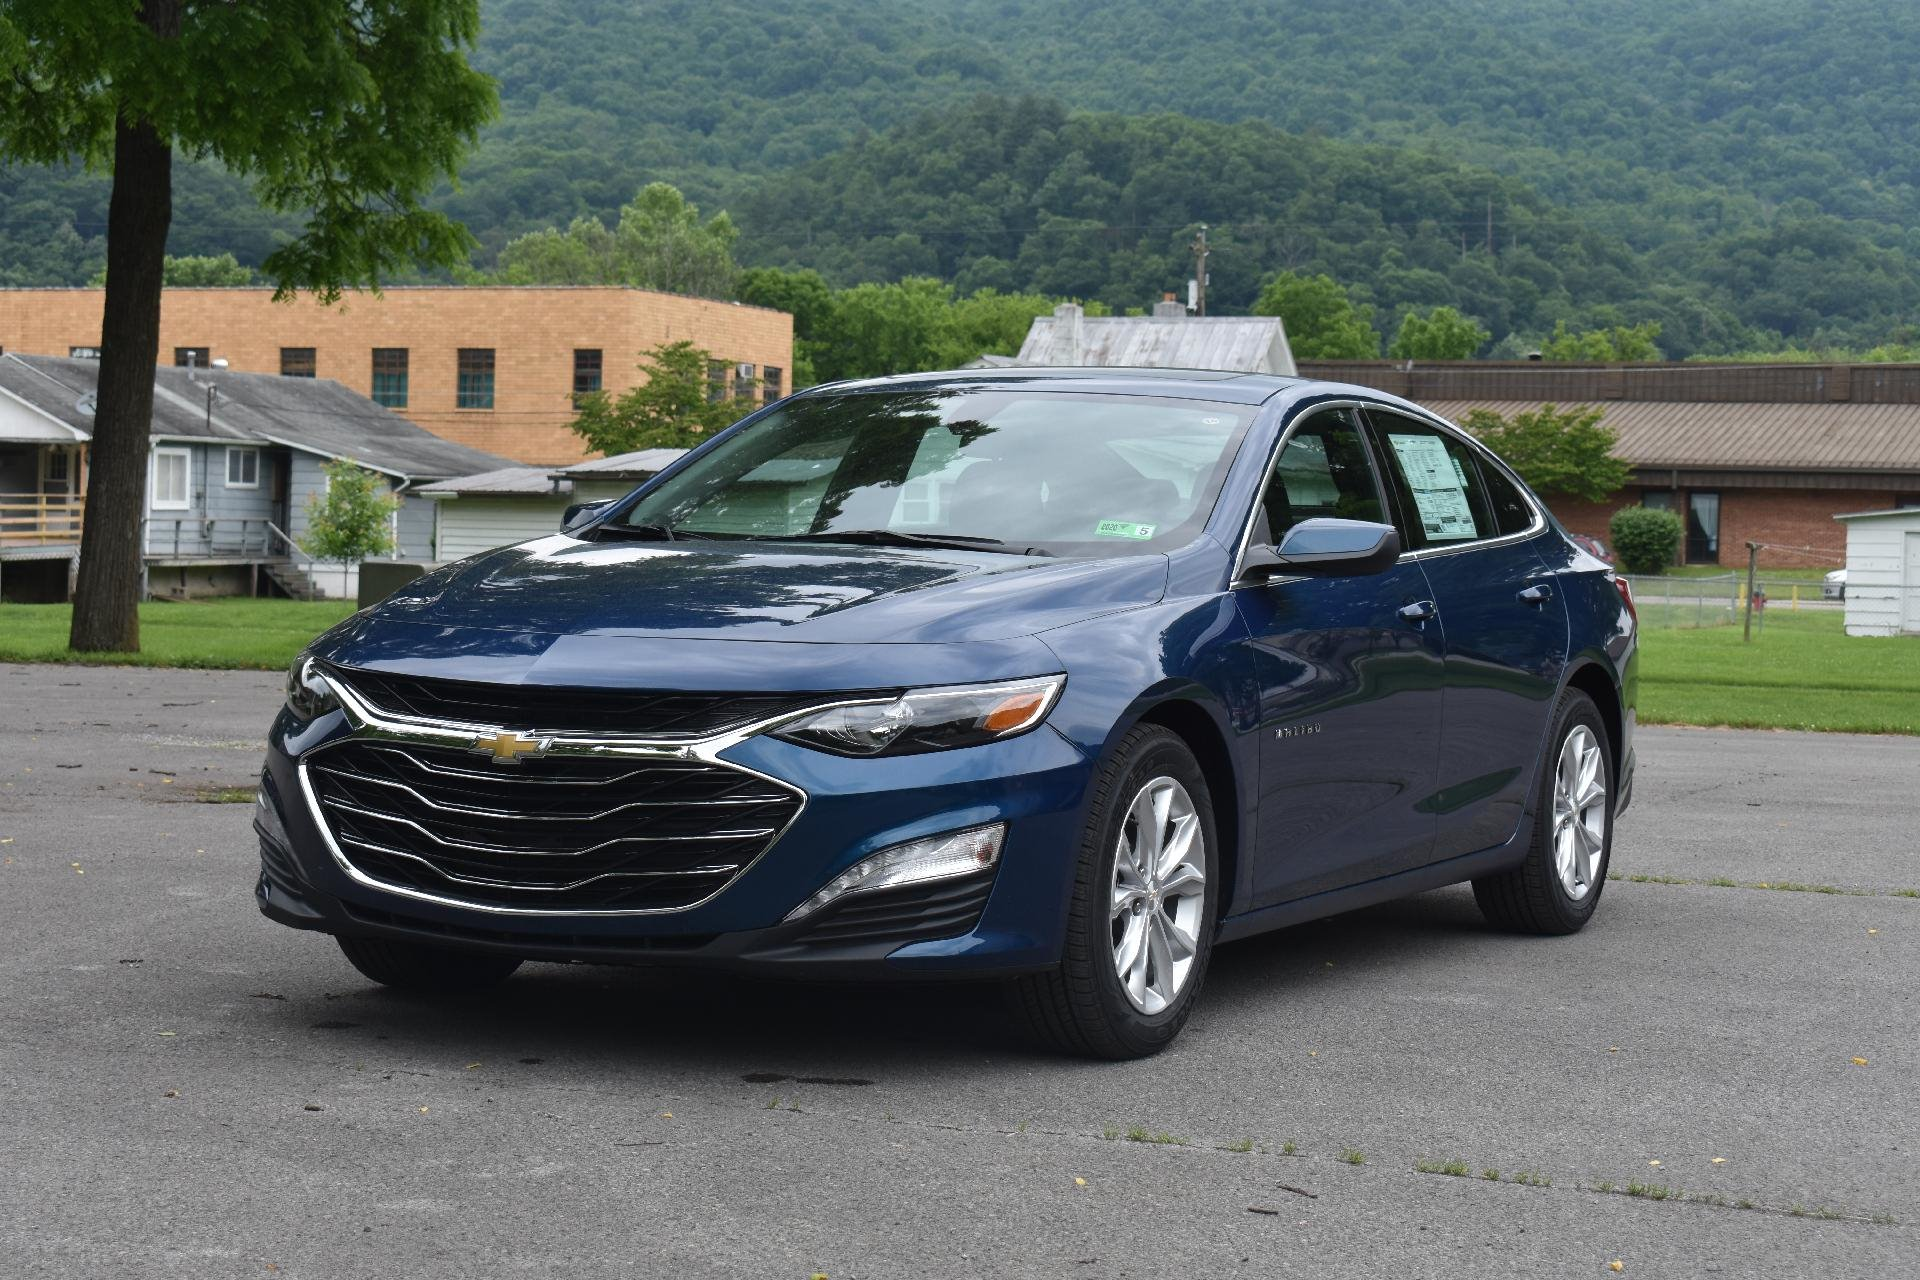 New 2019 Chevrolet-Malibu LT Malibu LT for sale $26,620 at M and V Leasing in Brooklyn NY 11223 1